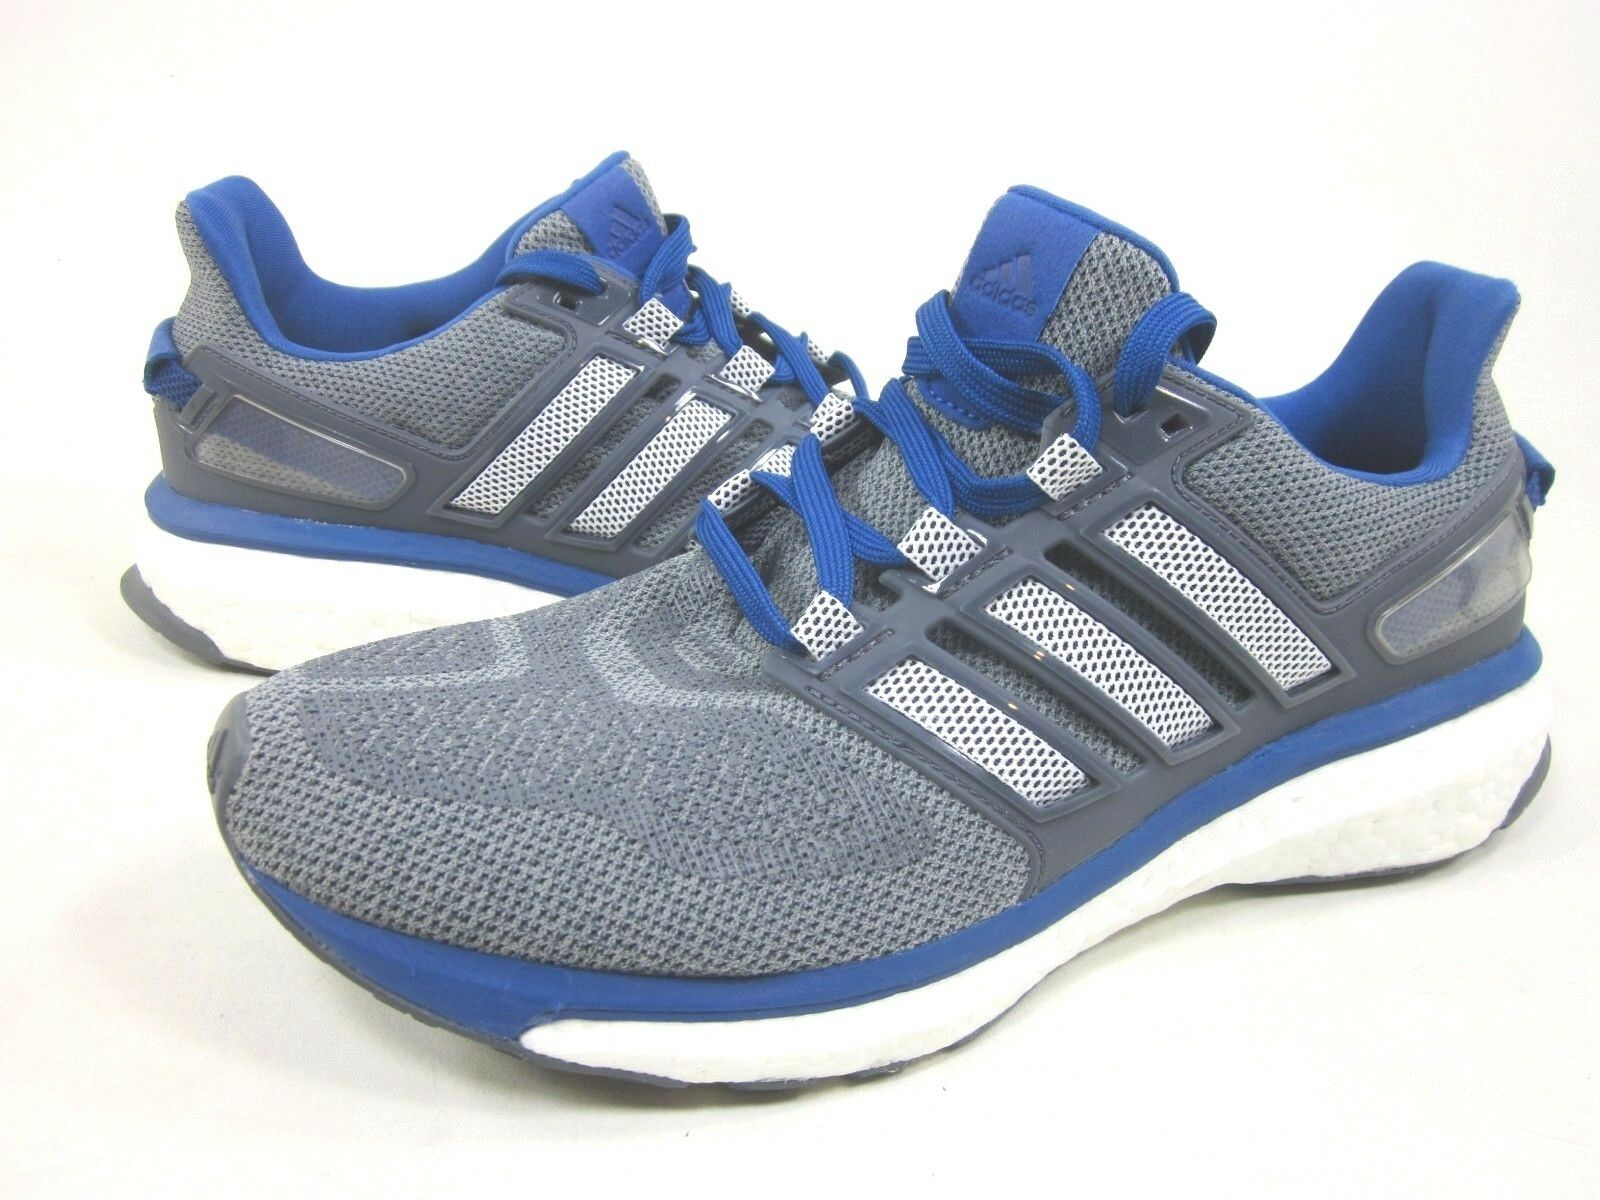 low priced 2181d a84c8 ADIDAS PERFORMANCE MEN S MEN S MEN S ENERGY BOOST 3 M RUNNING SHOES ,GREY BLUE,